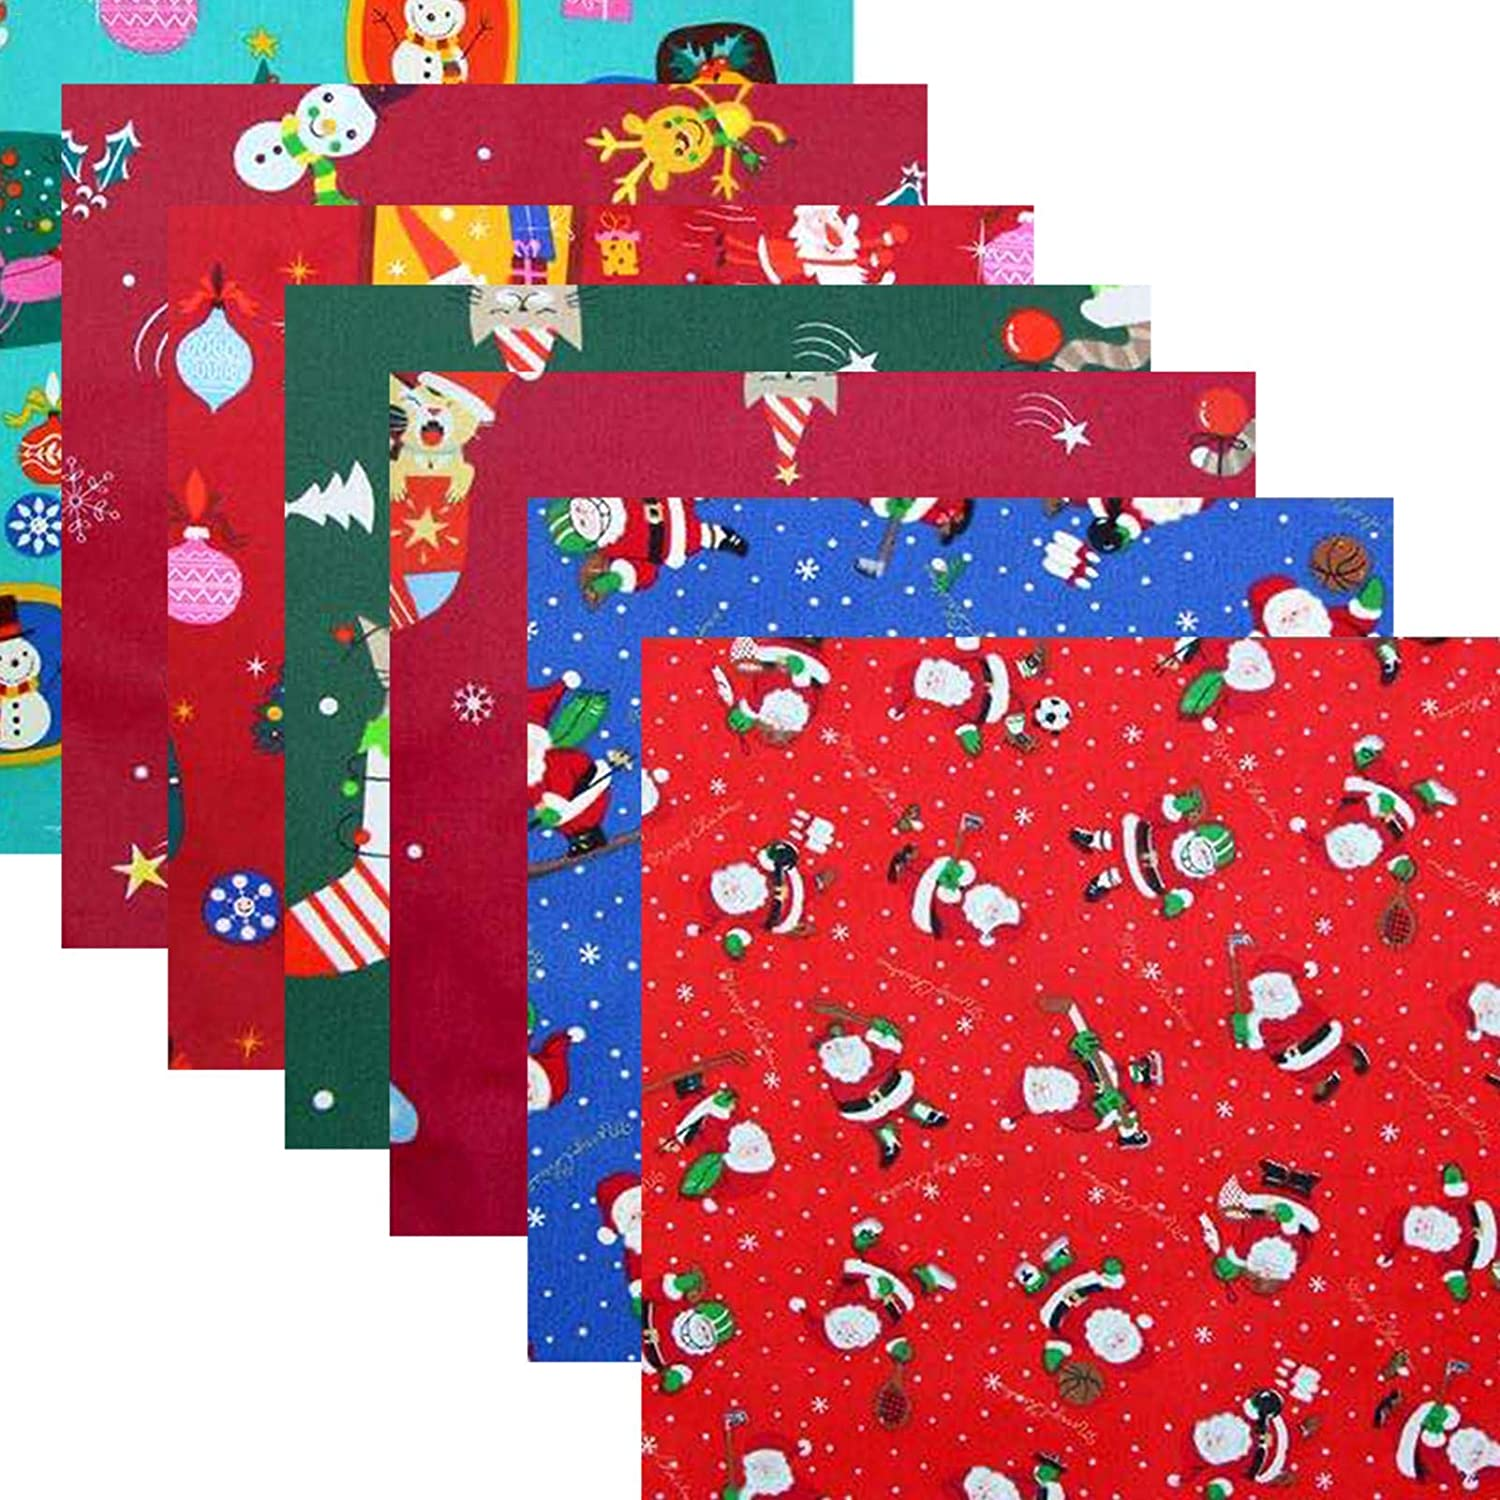 mollylower 8PCS Christmas Cotton Fabric,DIY Sewing Craft Cotton Fabric,Floral Squares Printed Quilt for DIY Clothes,Bags,Toys